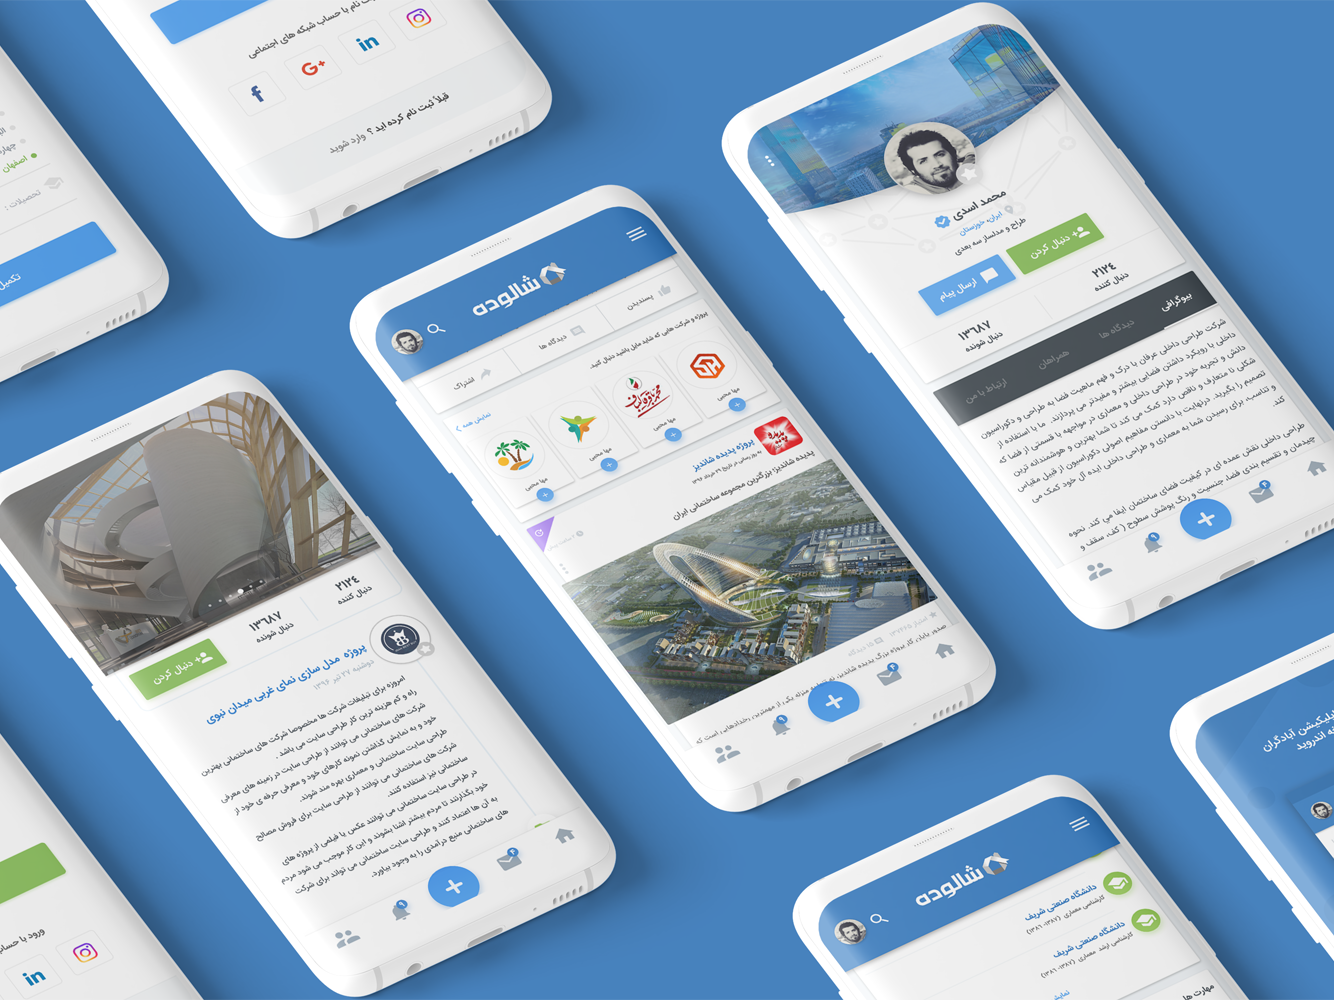 Shalodeh clean social ux design ui design industry building community shalodeh app